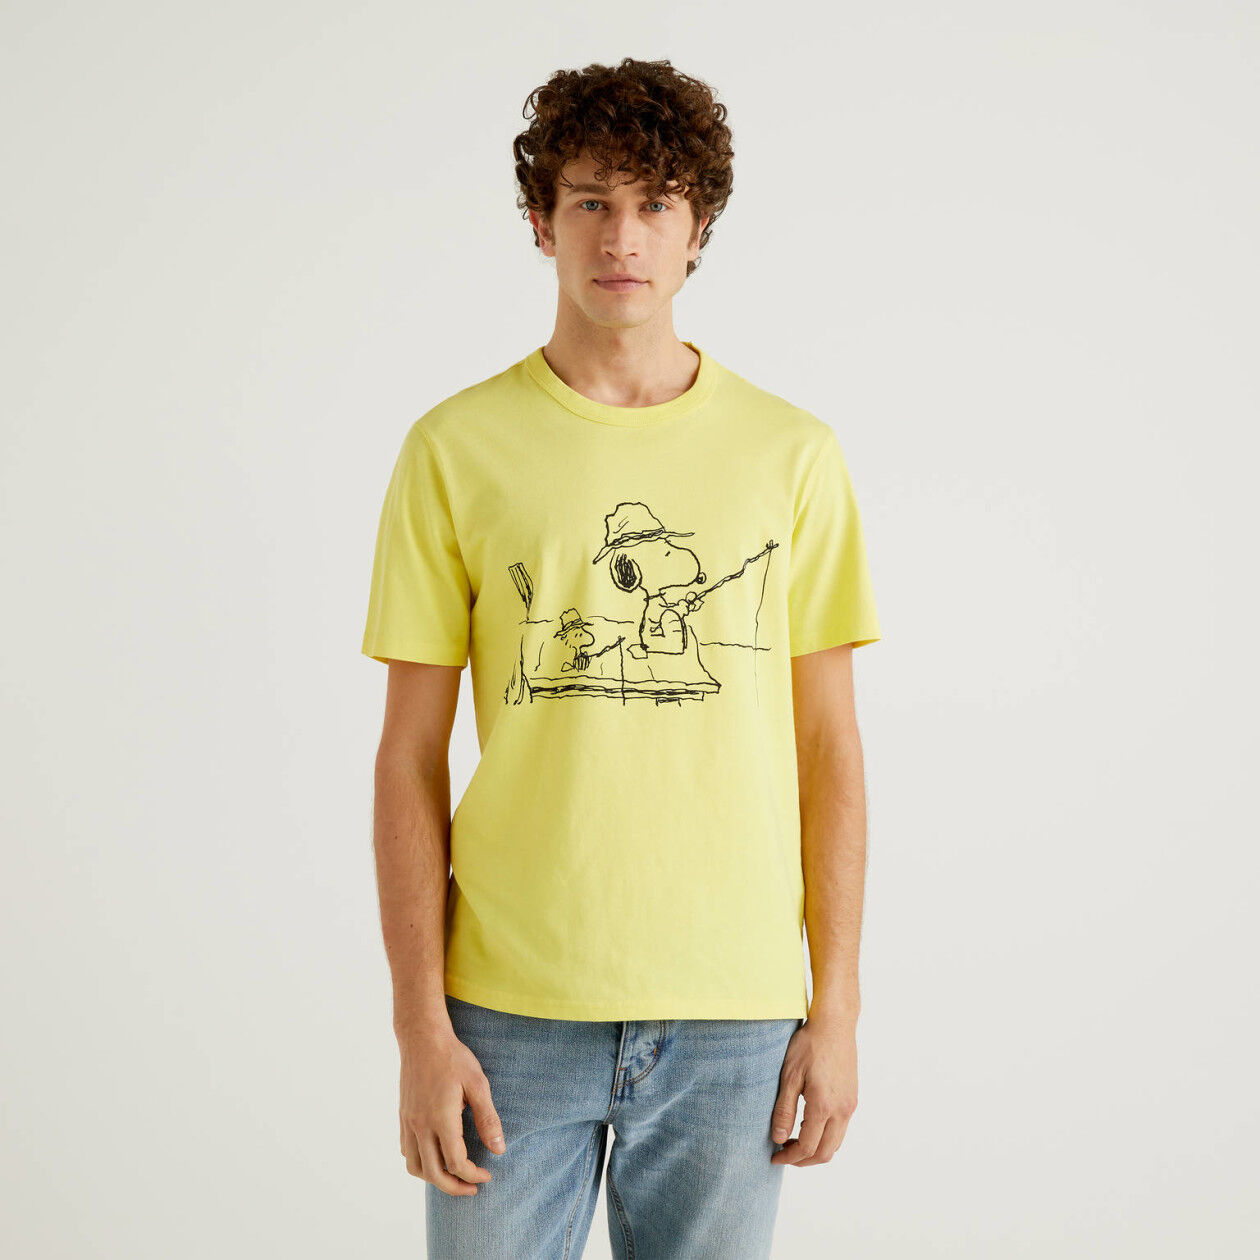 Yellow Peanuts t-shirt